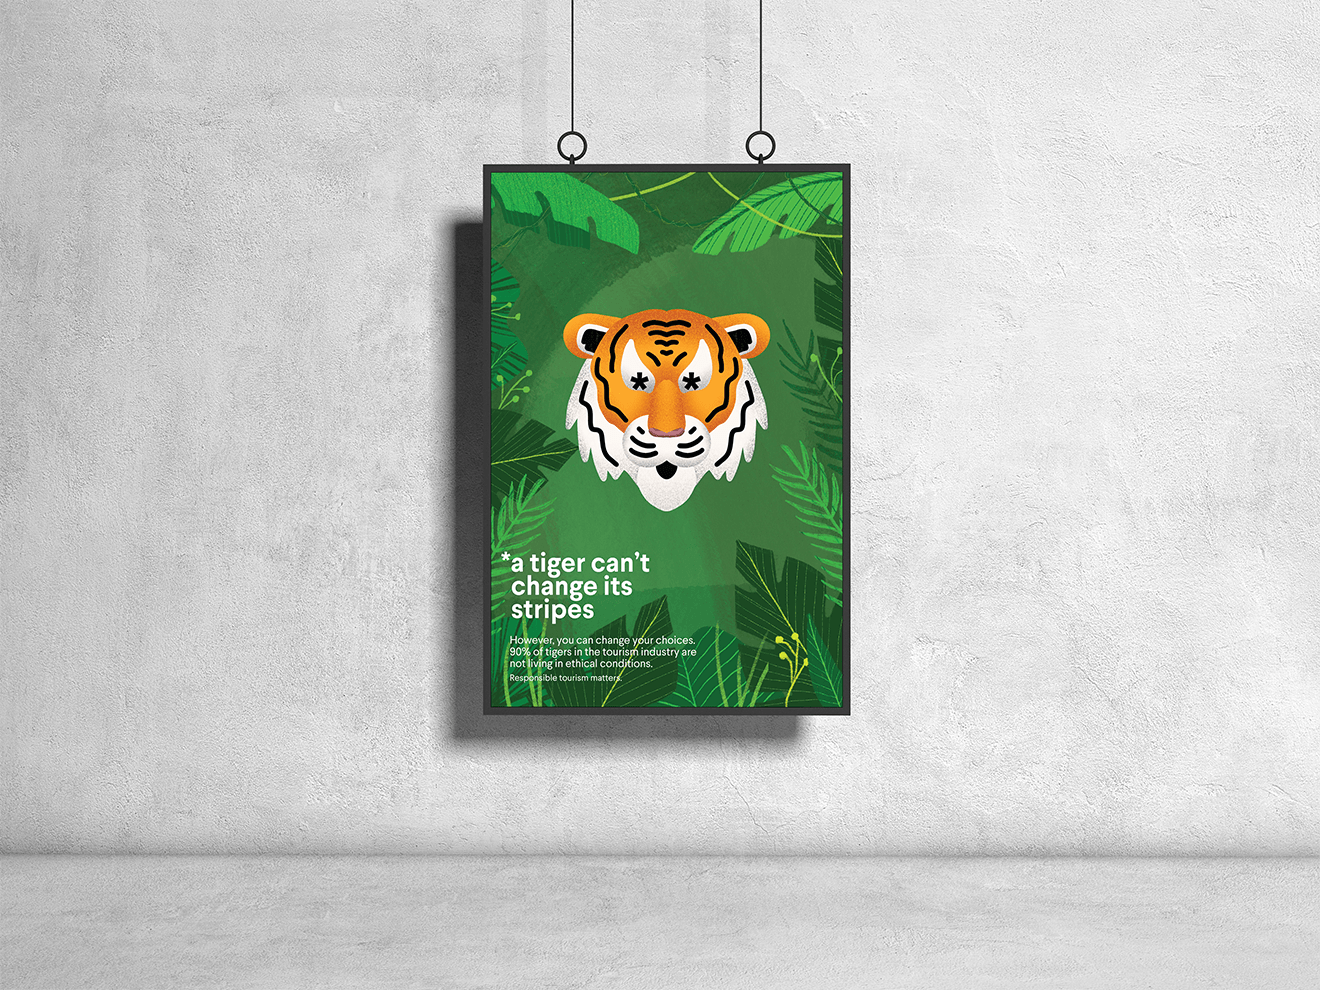 """A poster with an illustration of a tiger with asterisks for eyes. The text reads """"A tiger can't change its stripes. However, you can change your choices. 90% of tigers in the tourism industry are not living in ethical conditions. Responsible tourism matters."""""""